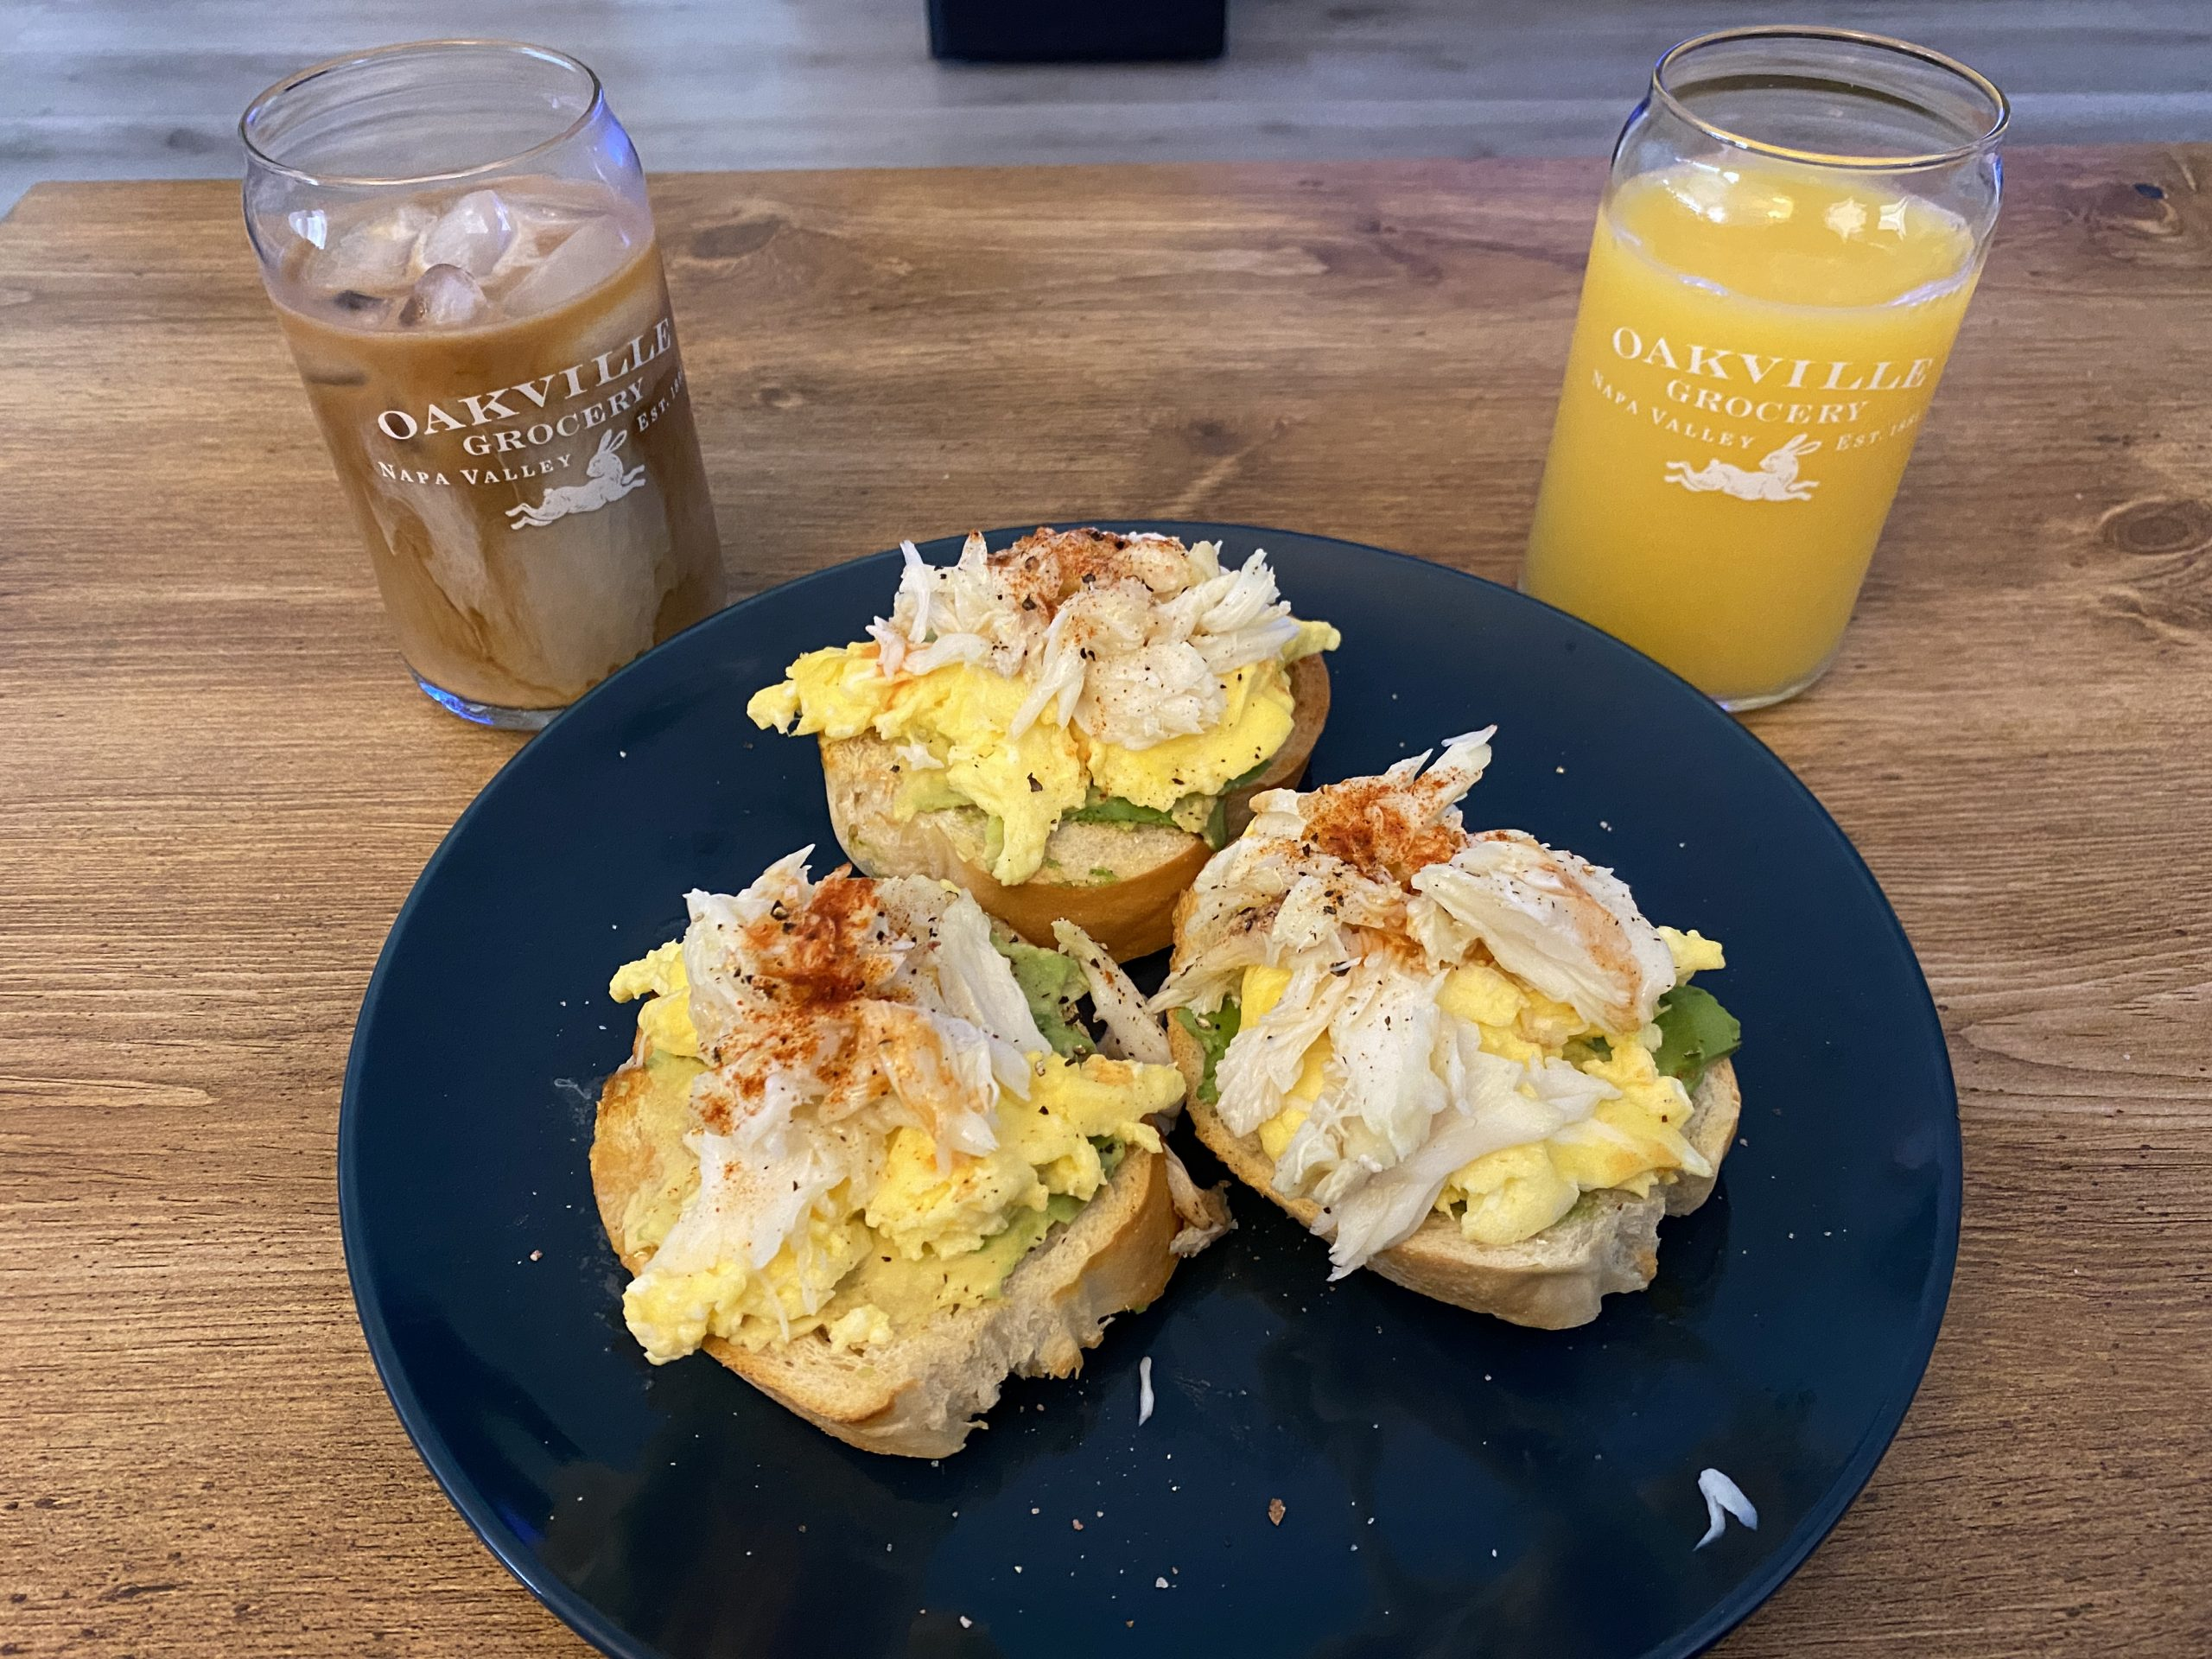 Crab & Egg Toasts with iced coffee and orange juice